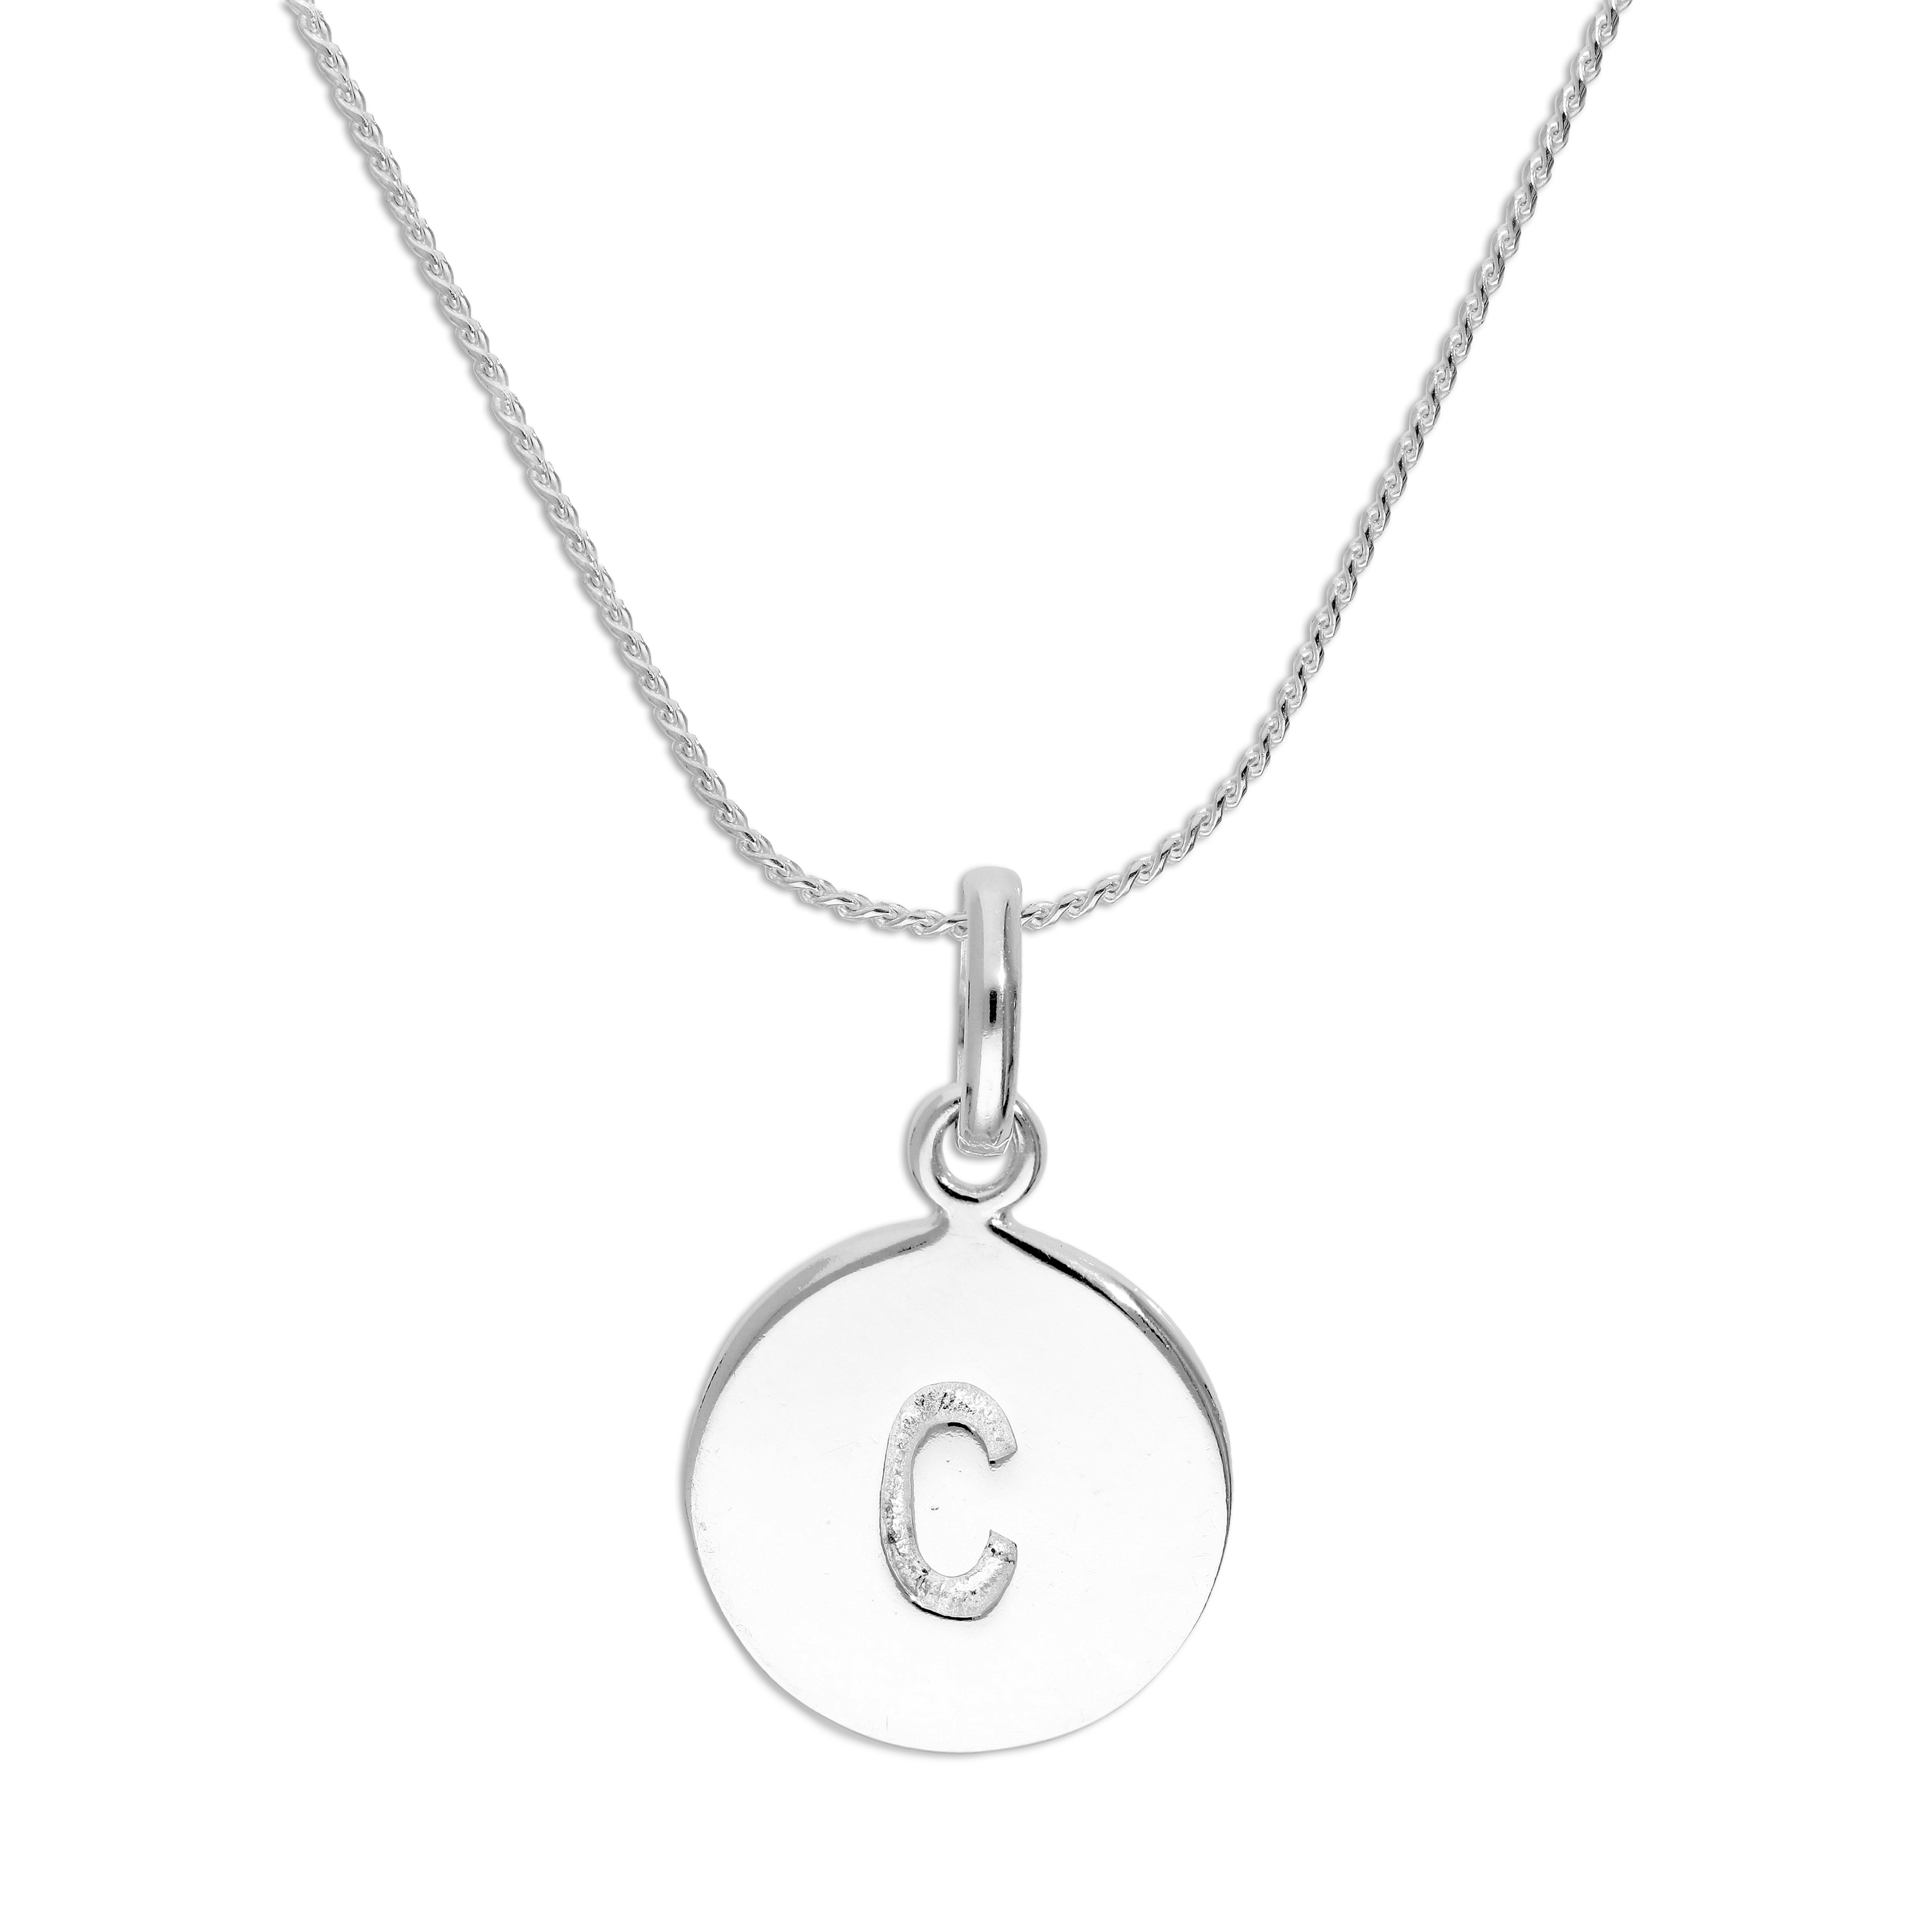 An image of Sterling Silver Initial Letter C Necklace 16 Inches Blue